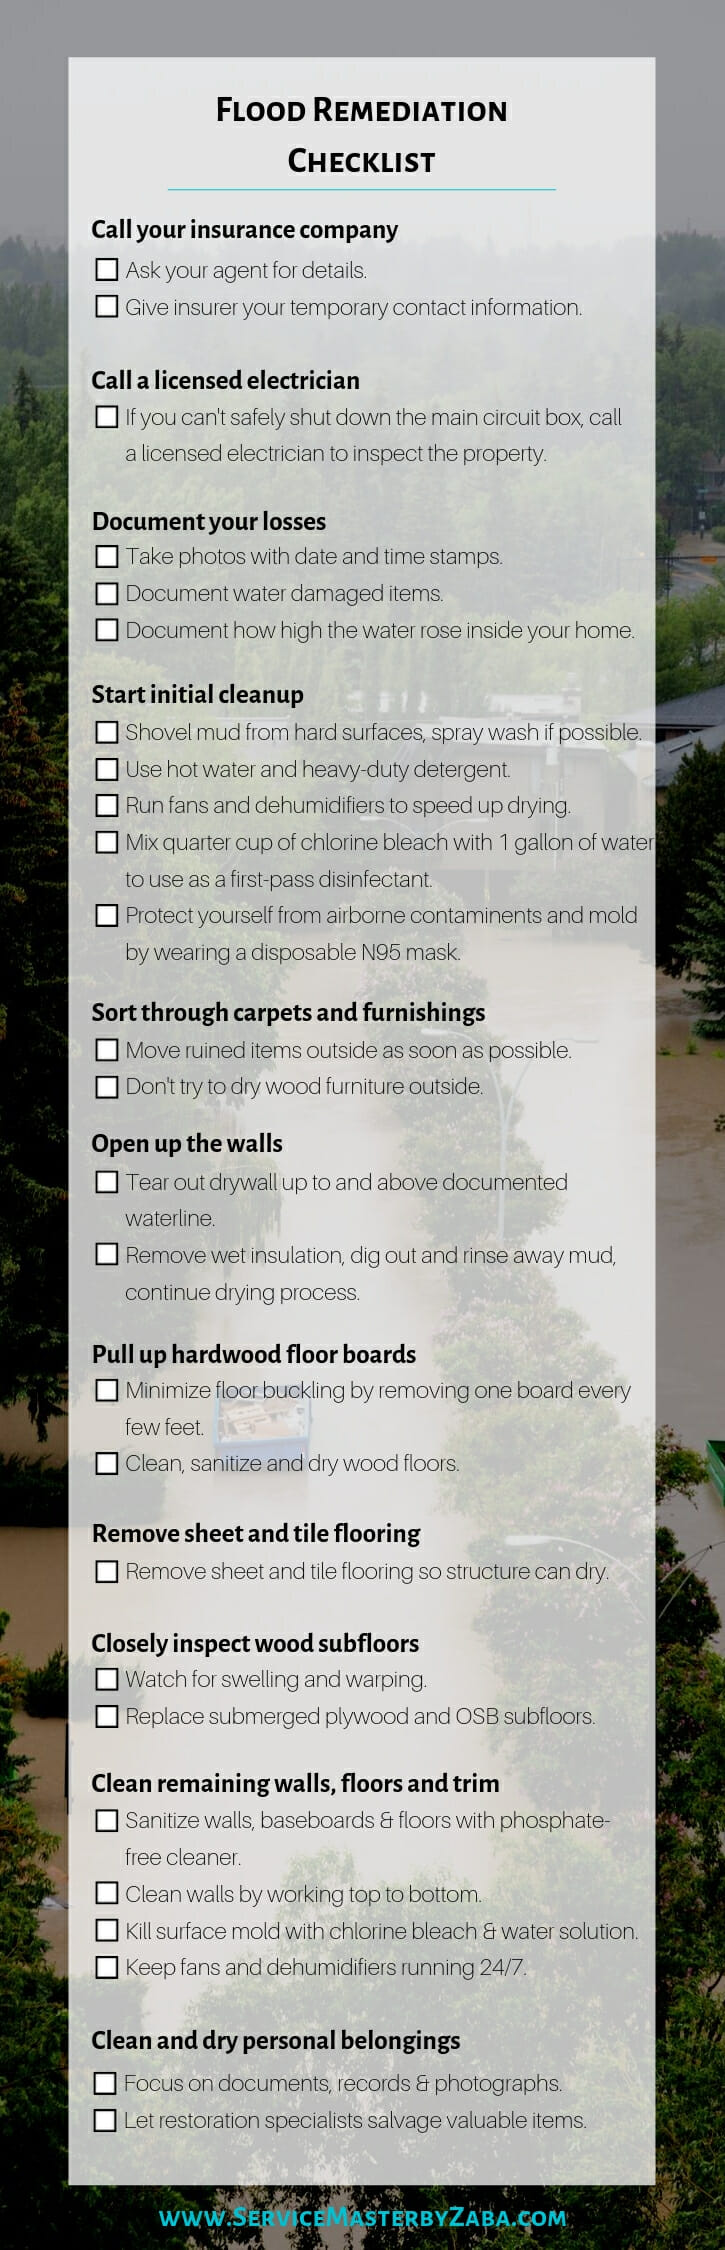 flood remediation checklist